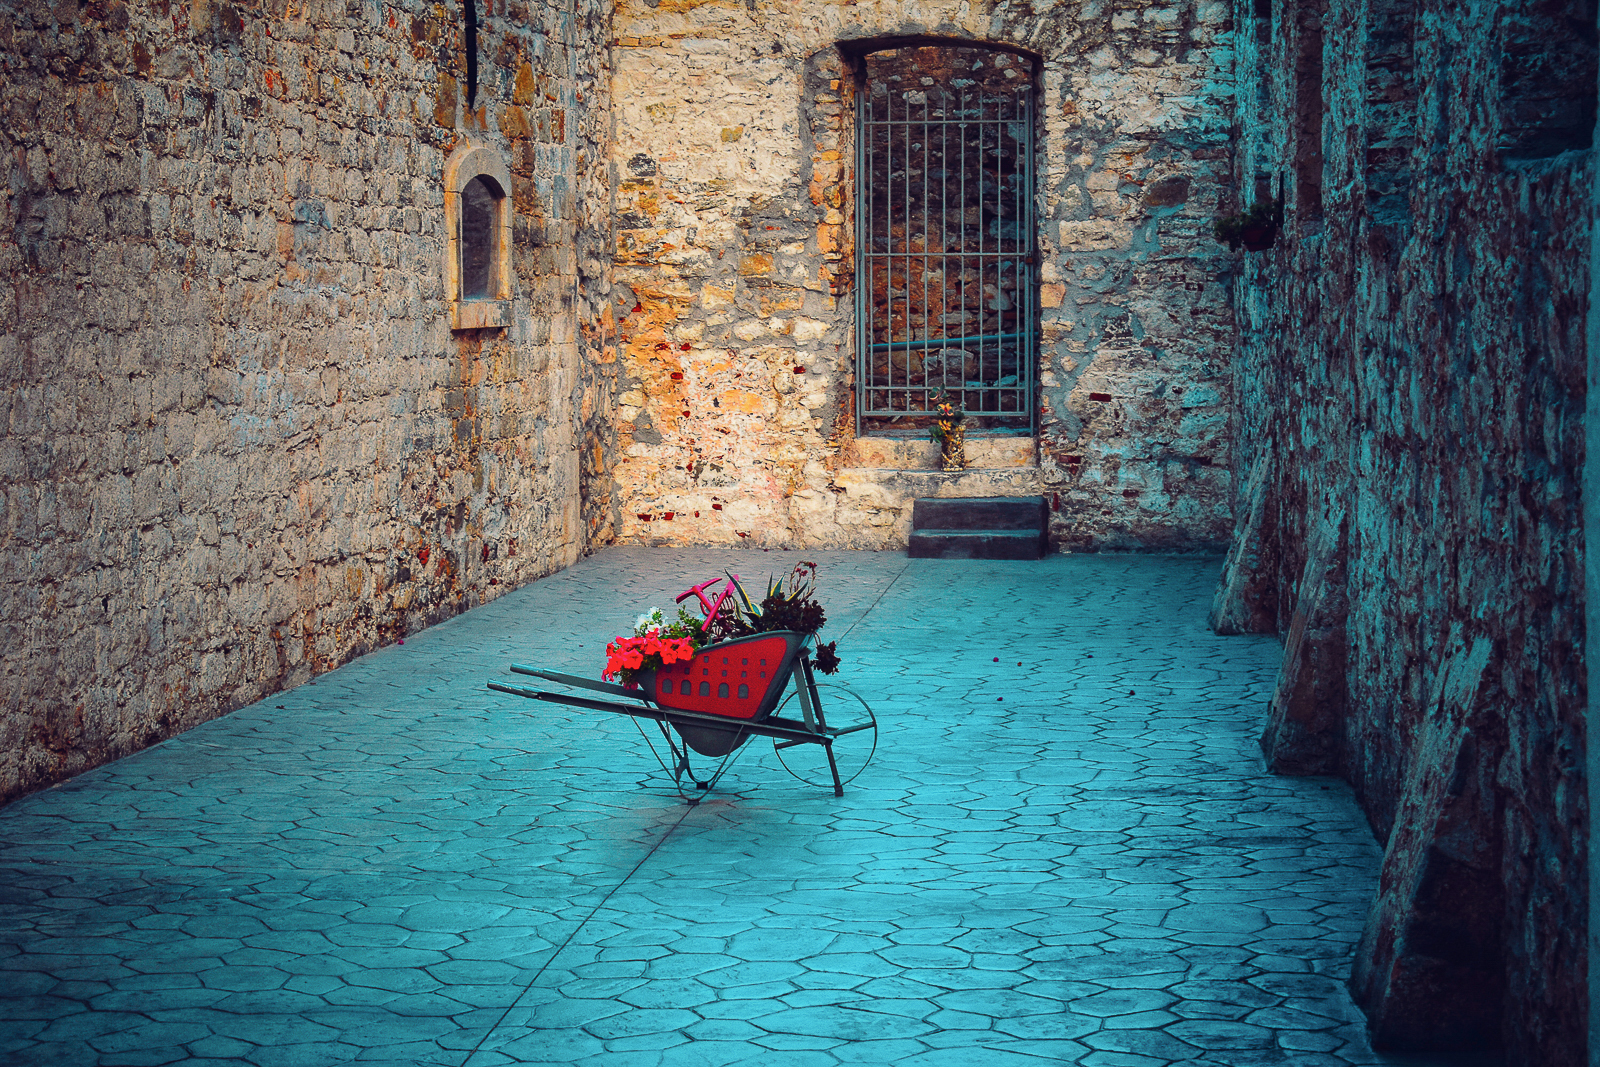 A Lone, Red Wheelbarrow in Old Town Nafplio_2nd Place Pictorial